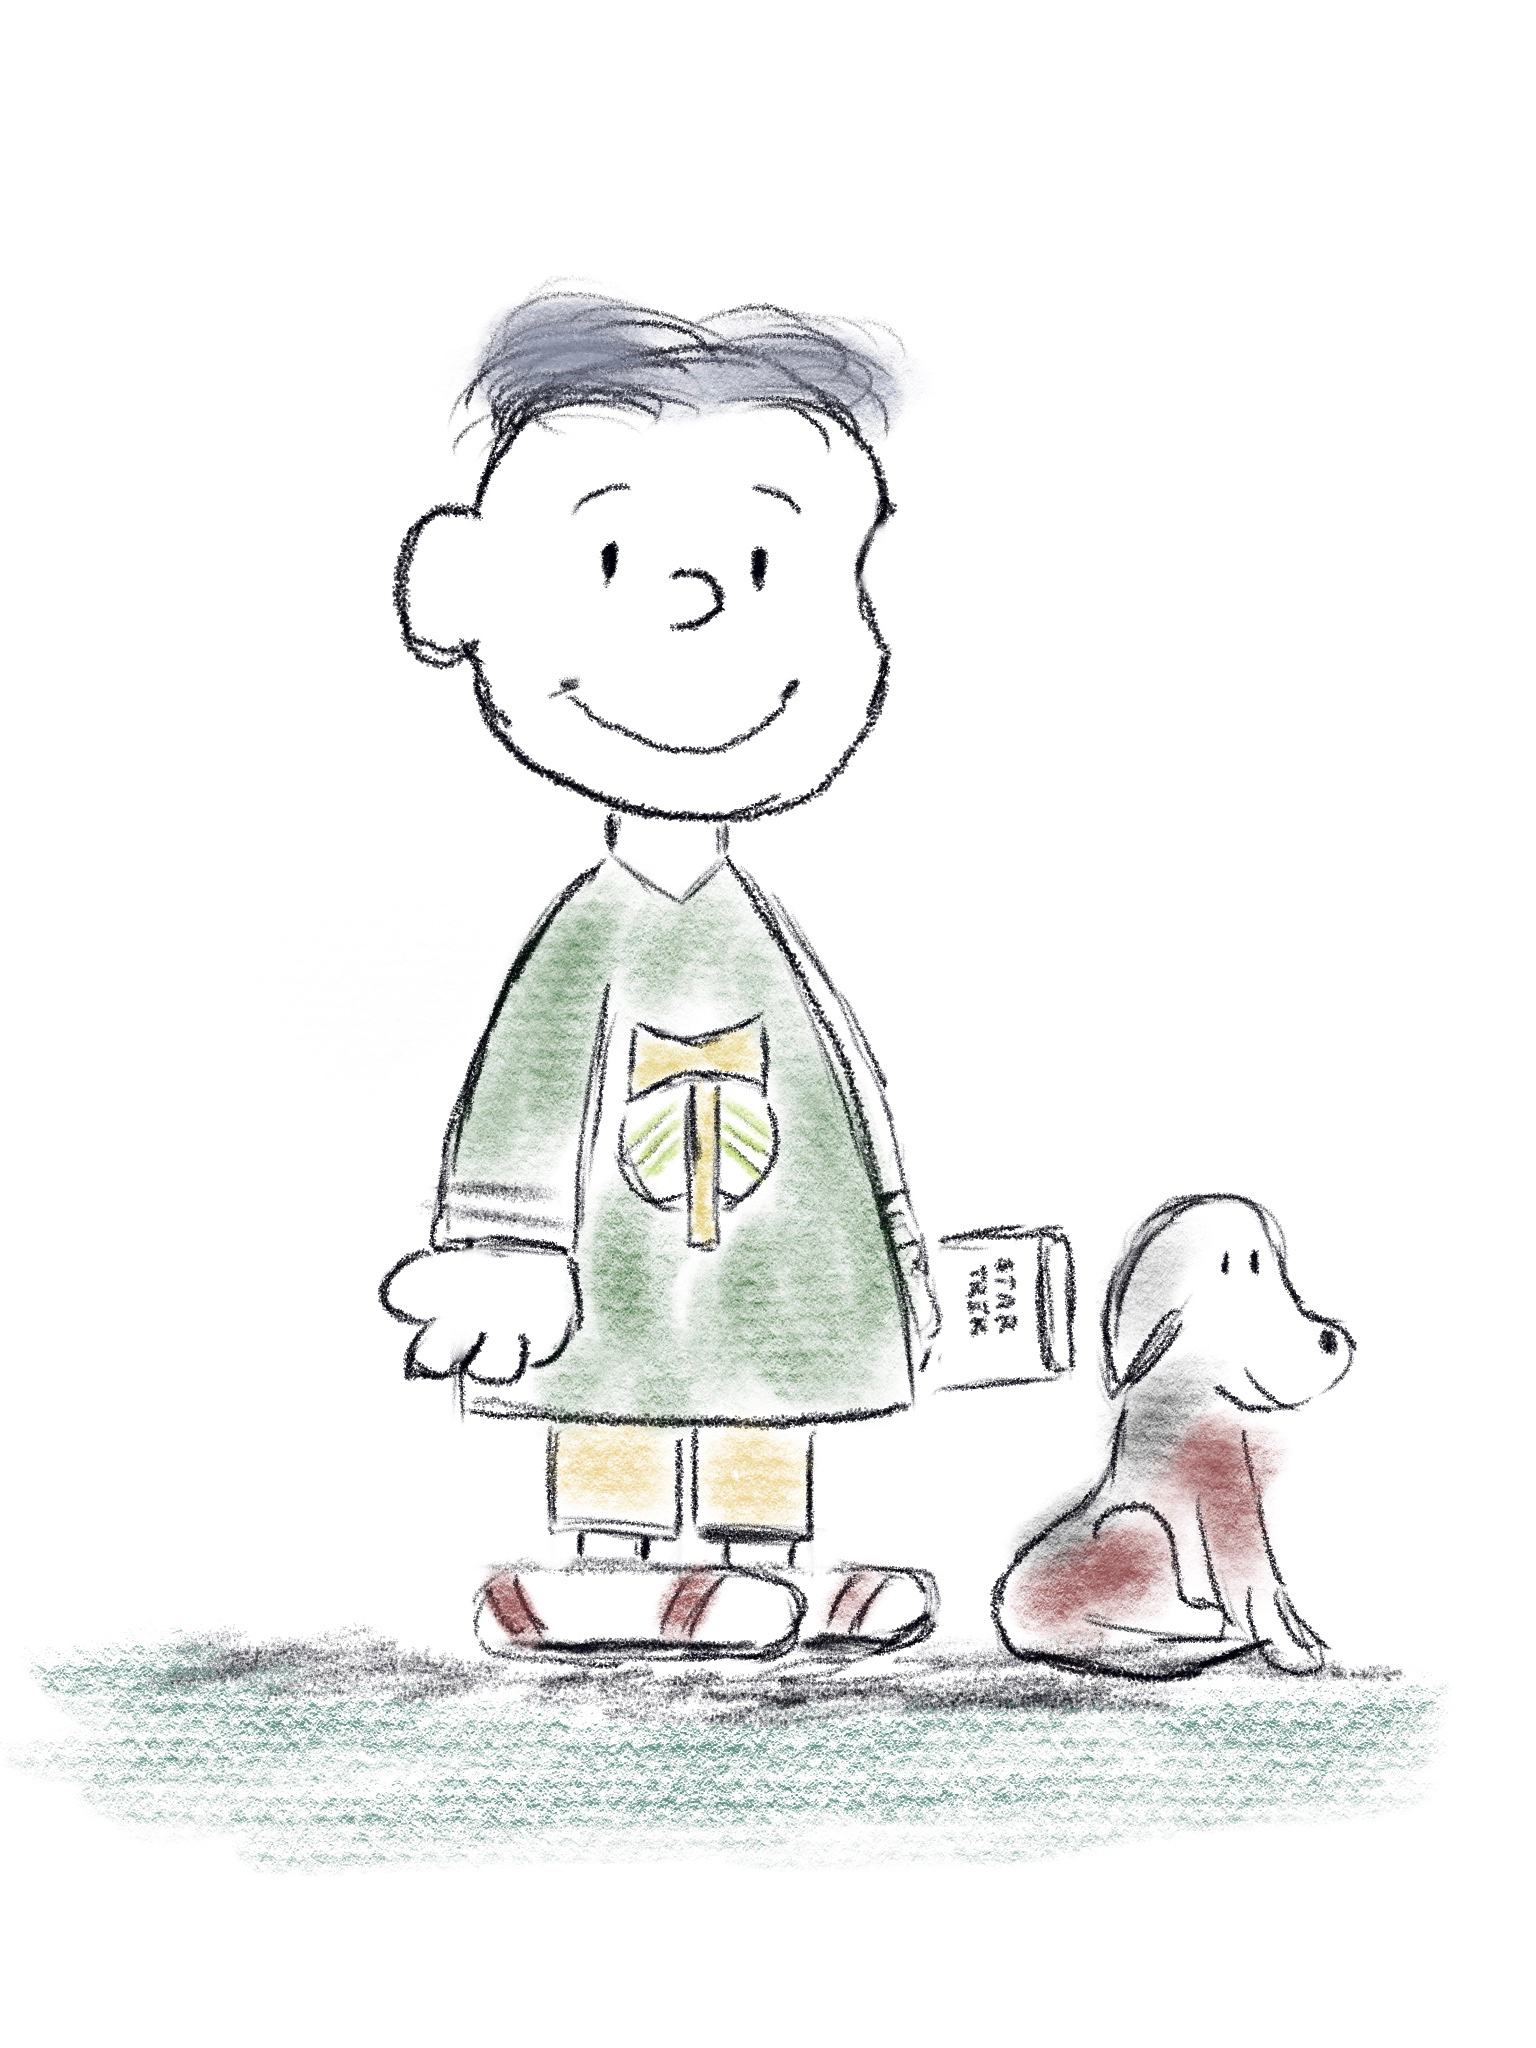 J.D. in Peanuts style